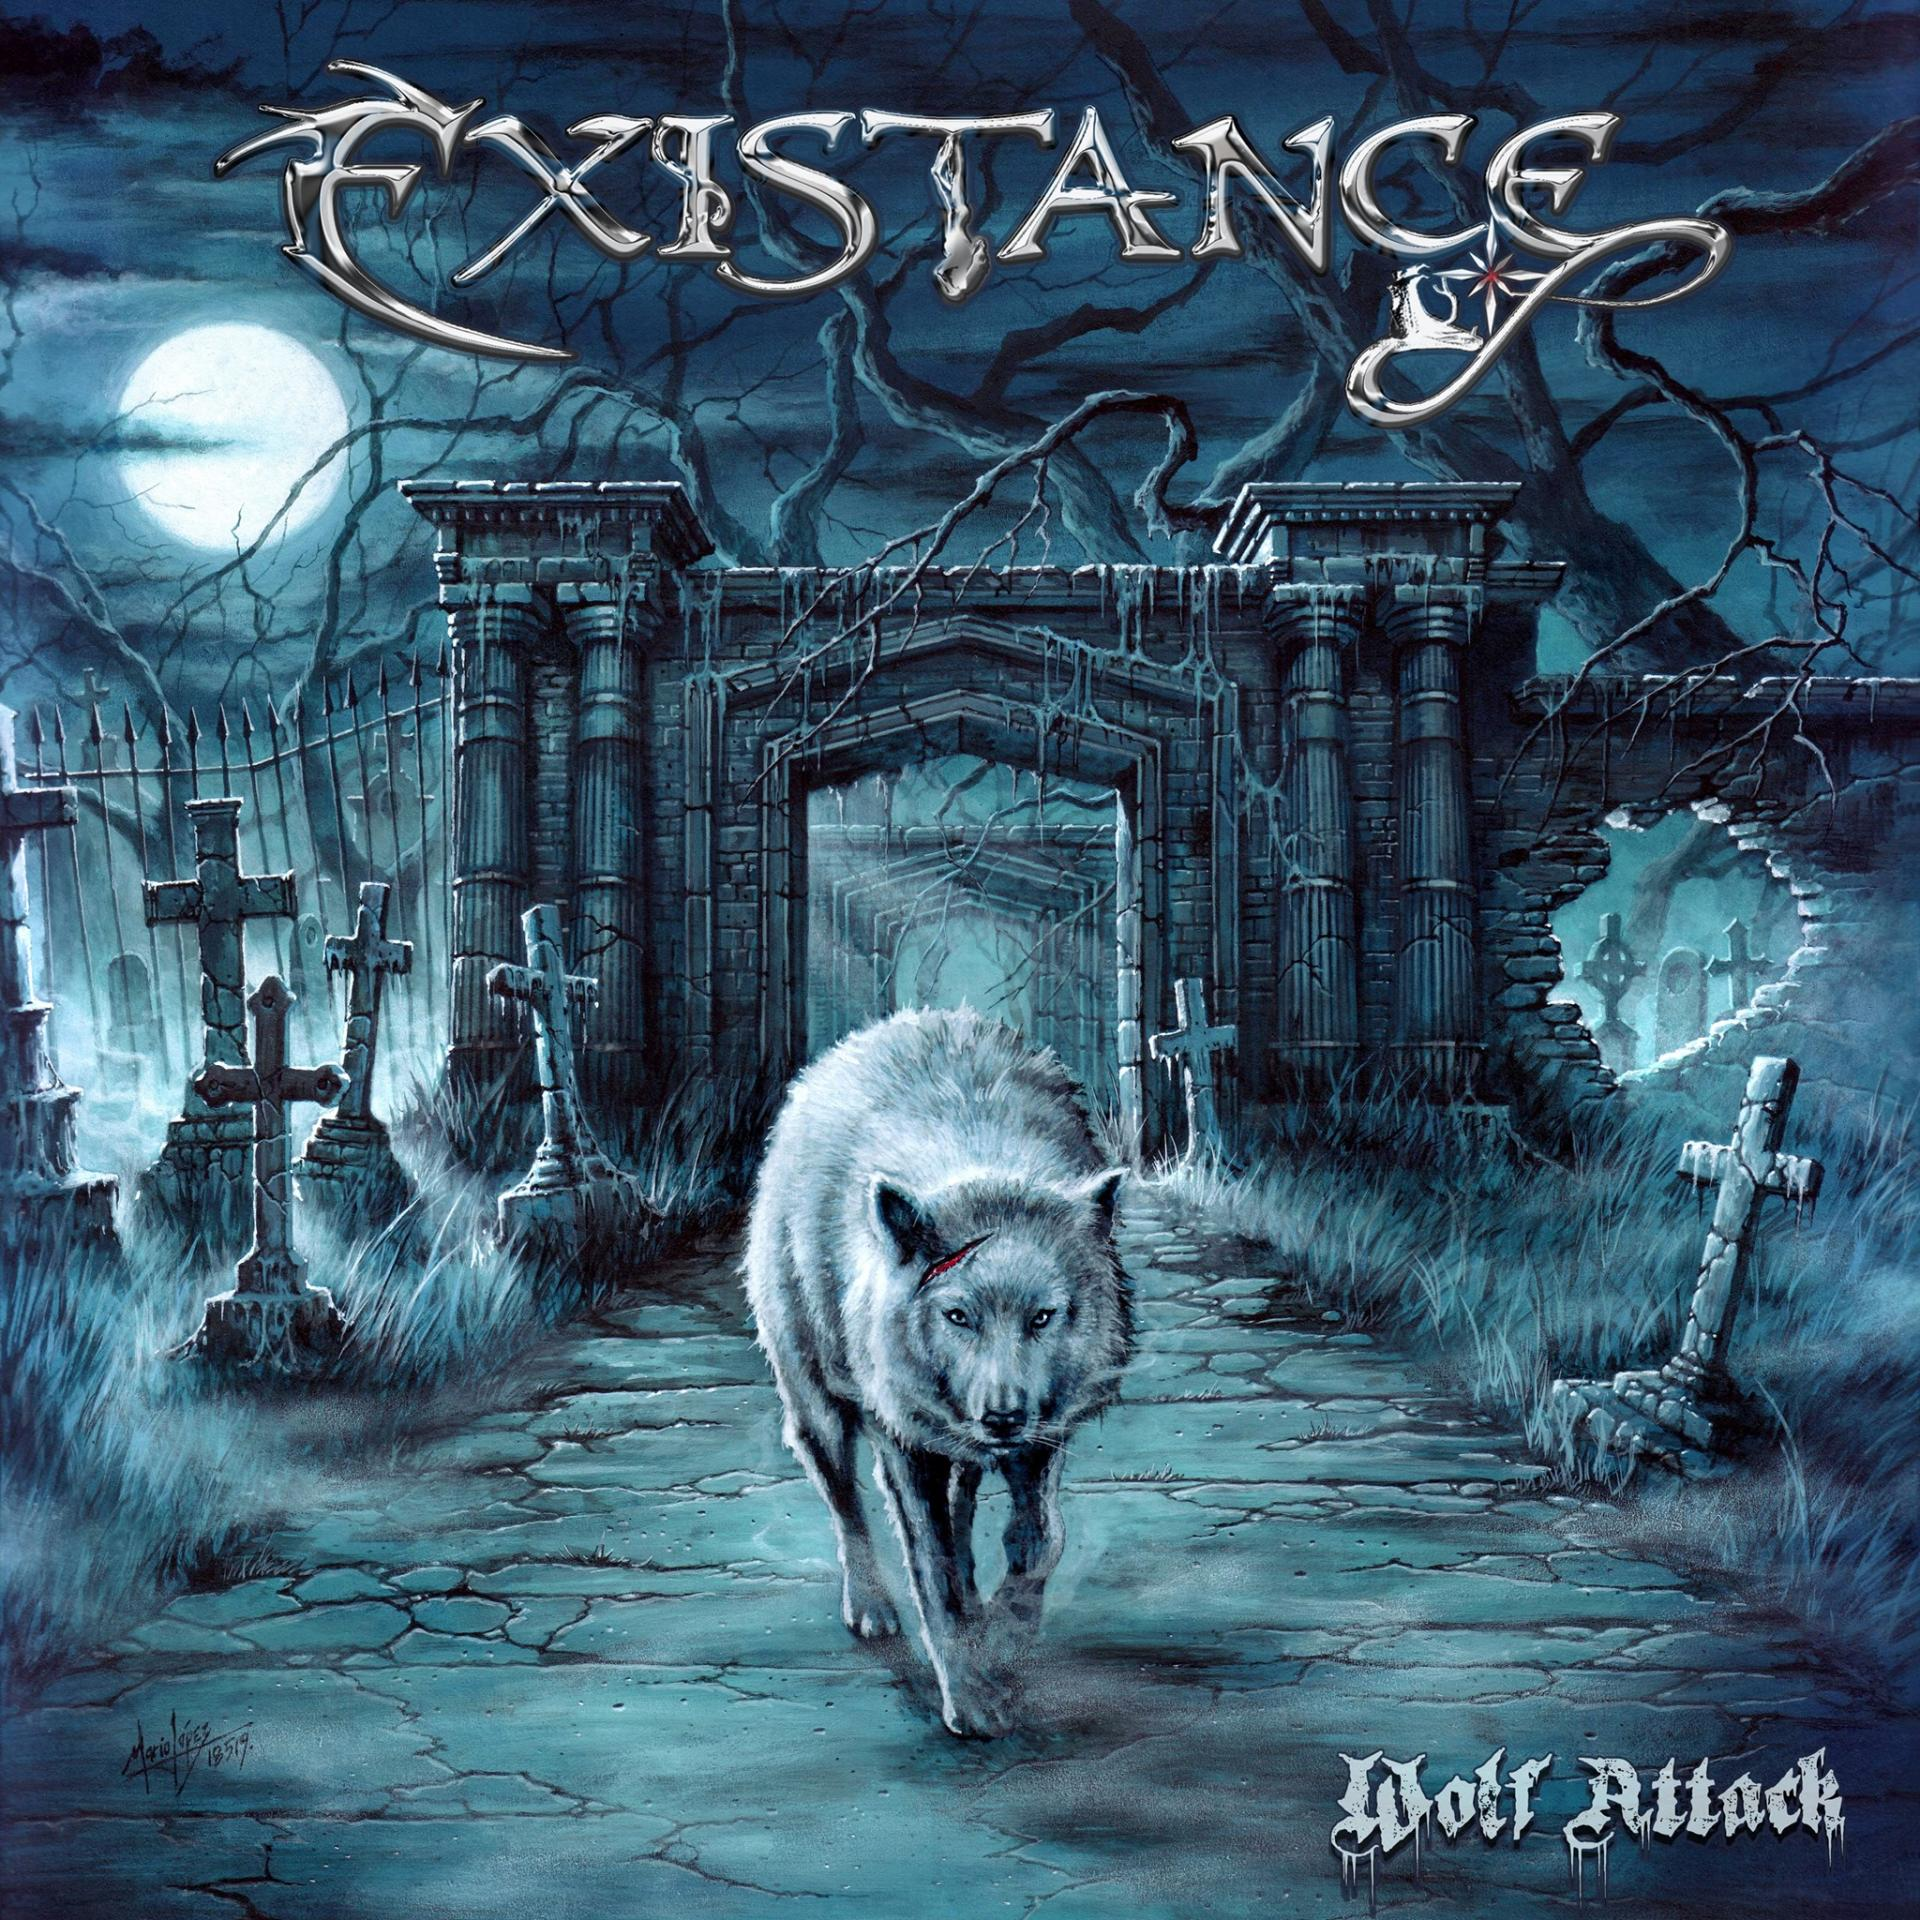 Existance